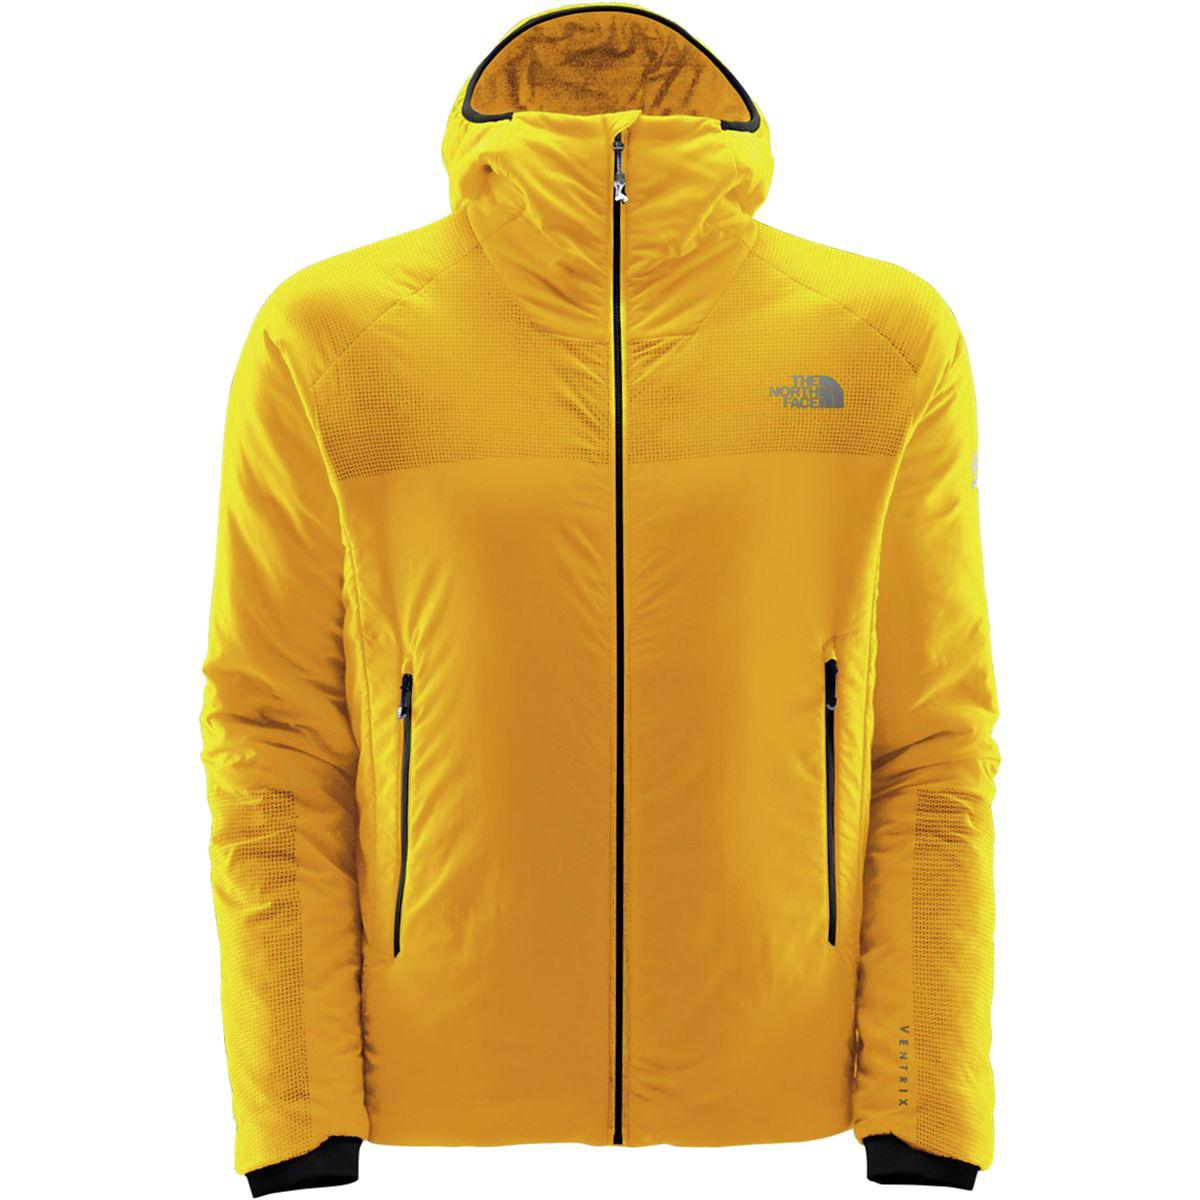 76732afaf The North Face Yellow Summit L3 Ventrix Hooded Insulated Jacket for men